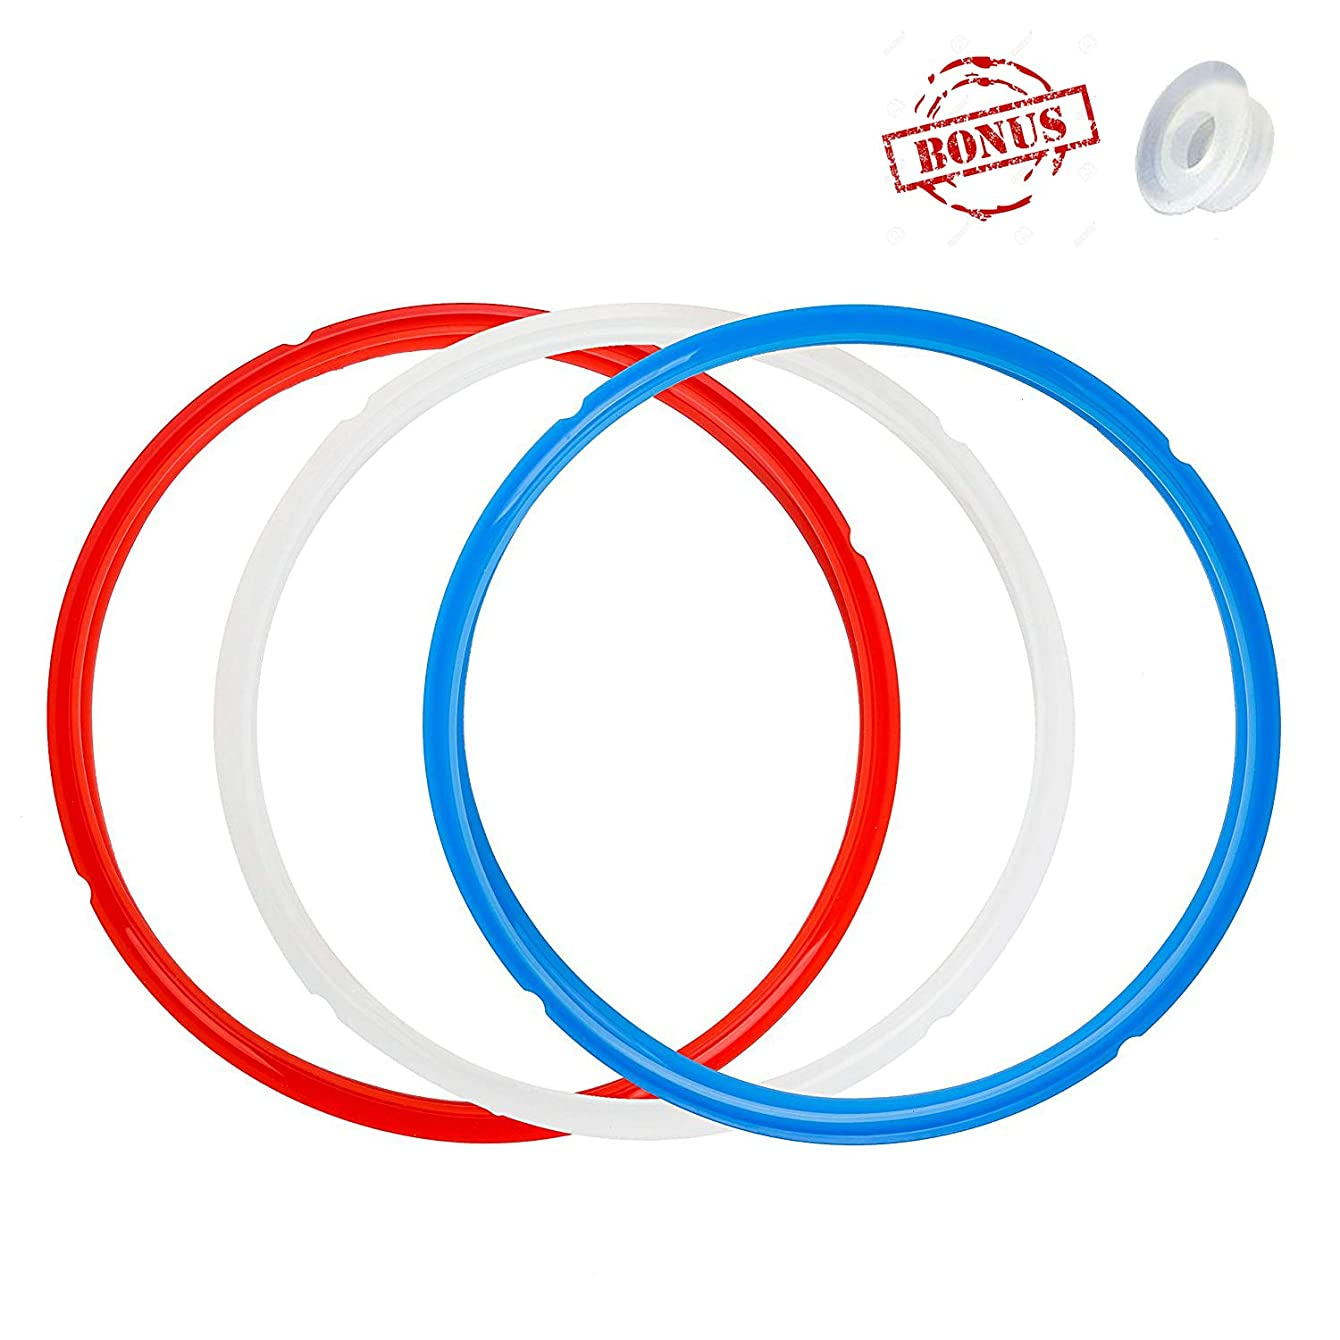 Silicone Sealing Ring and Steam Release Valve for Instant Pot, 3 Pack Sealing Ring with Release Handle for Instapot Smart/Duo - Perfect Accessories for 5/6 qt Instant Pot